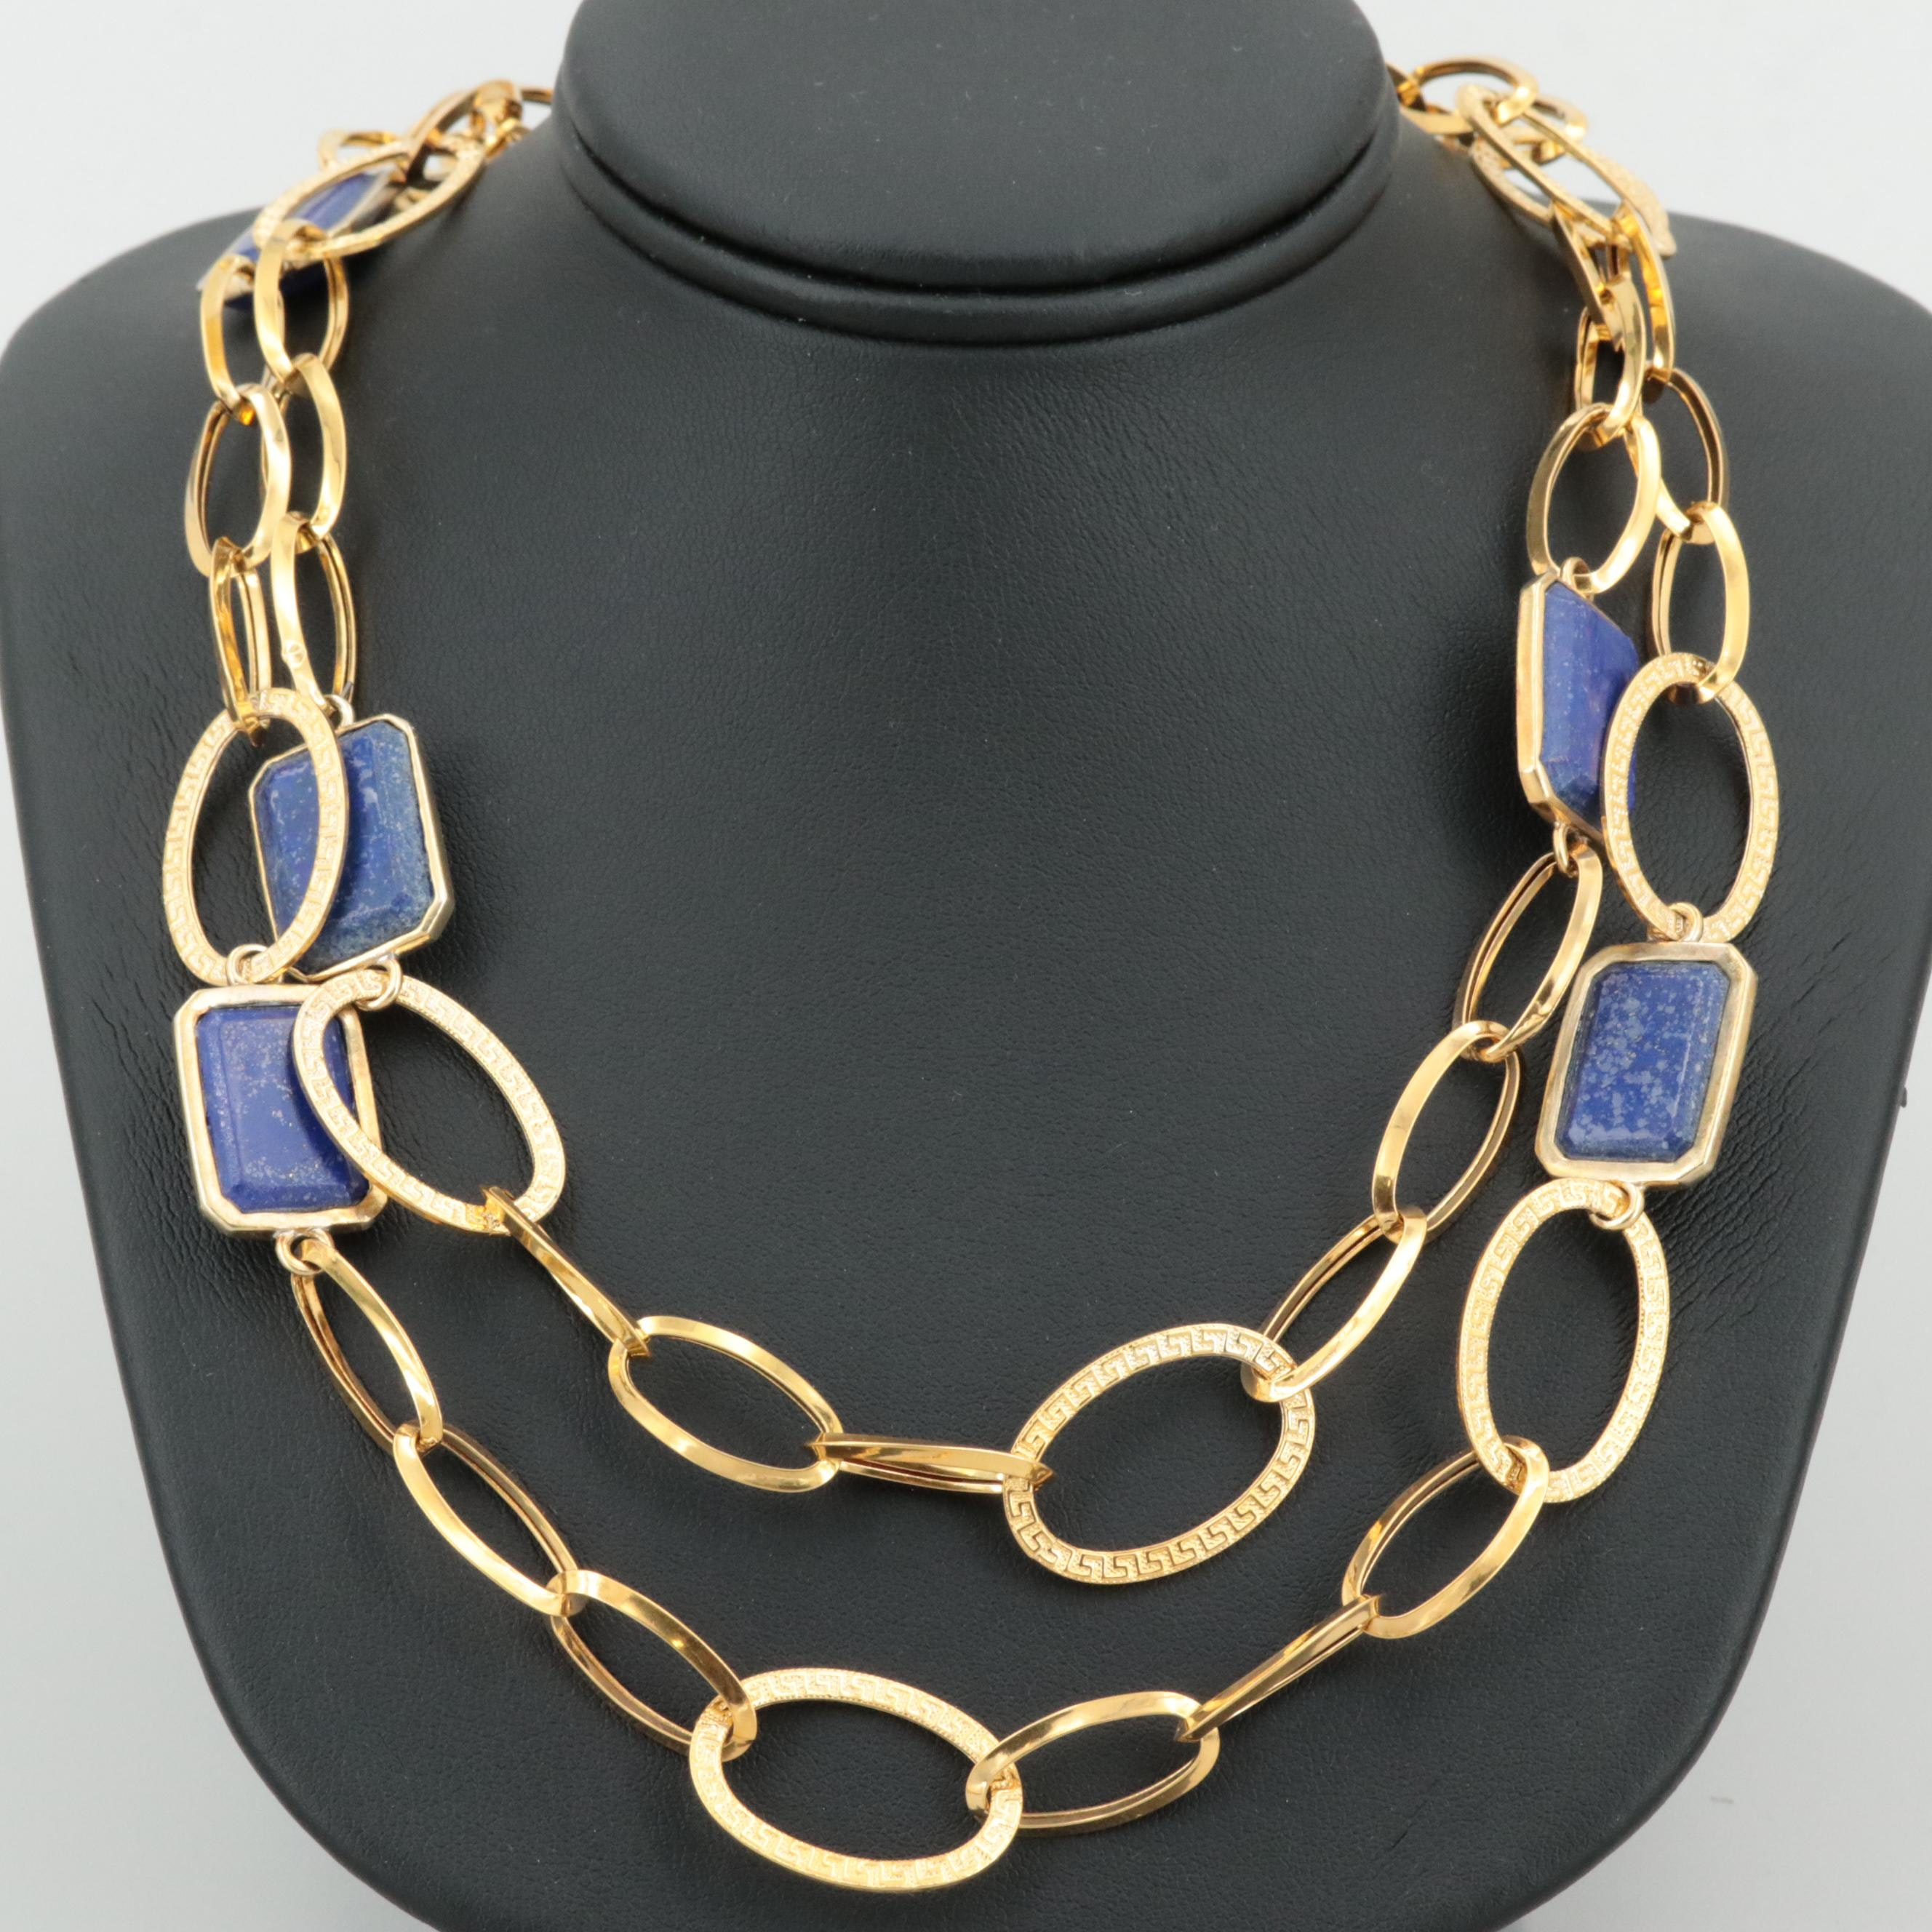 Italian 18K Yellow Gold Lapis Lazuli Necklace with Sterling Silver Accents